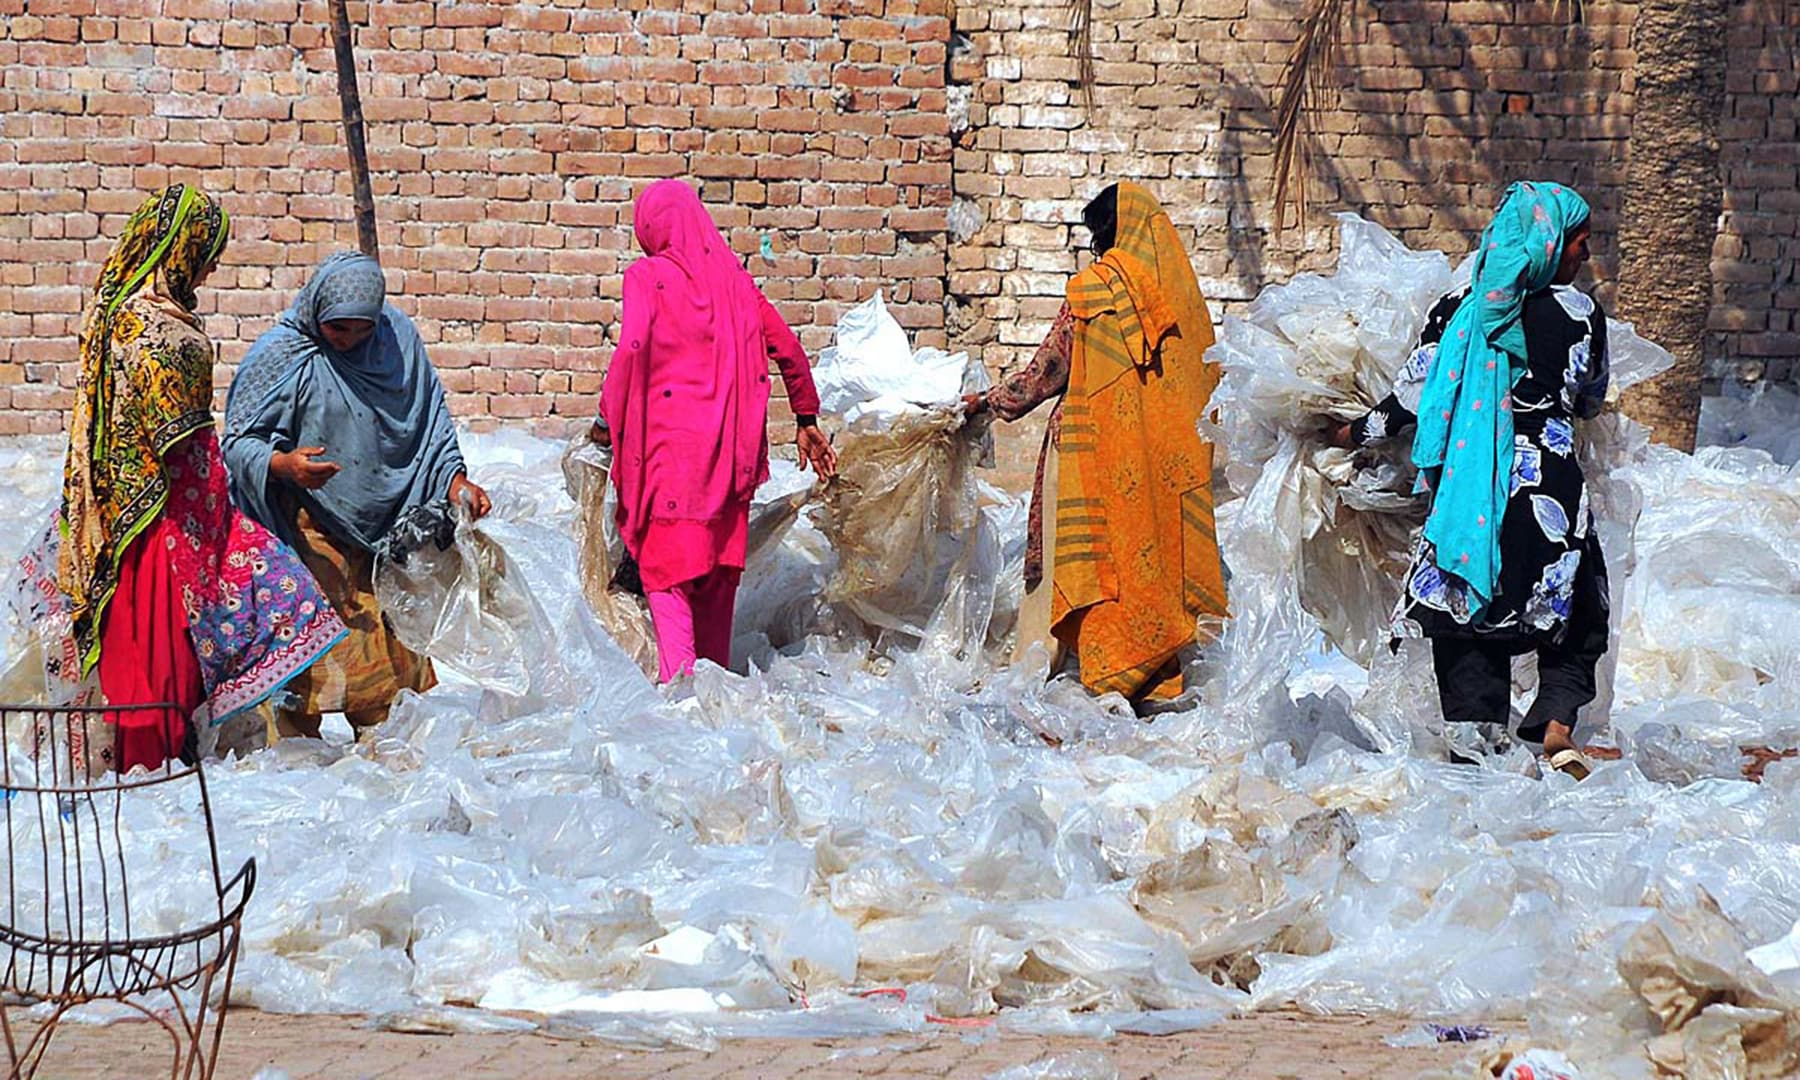 Lady workers spread plastic bags for drying purposes at a local factory in Multan on International Women's Day. — APP